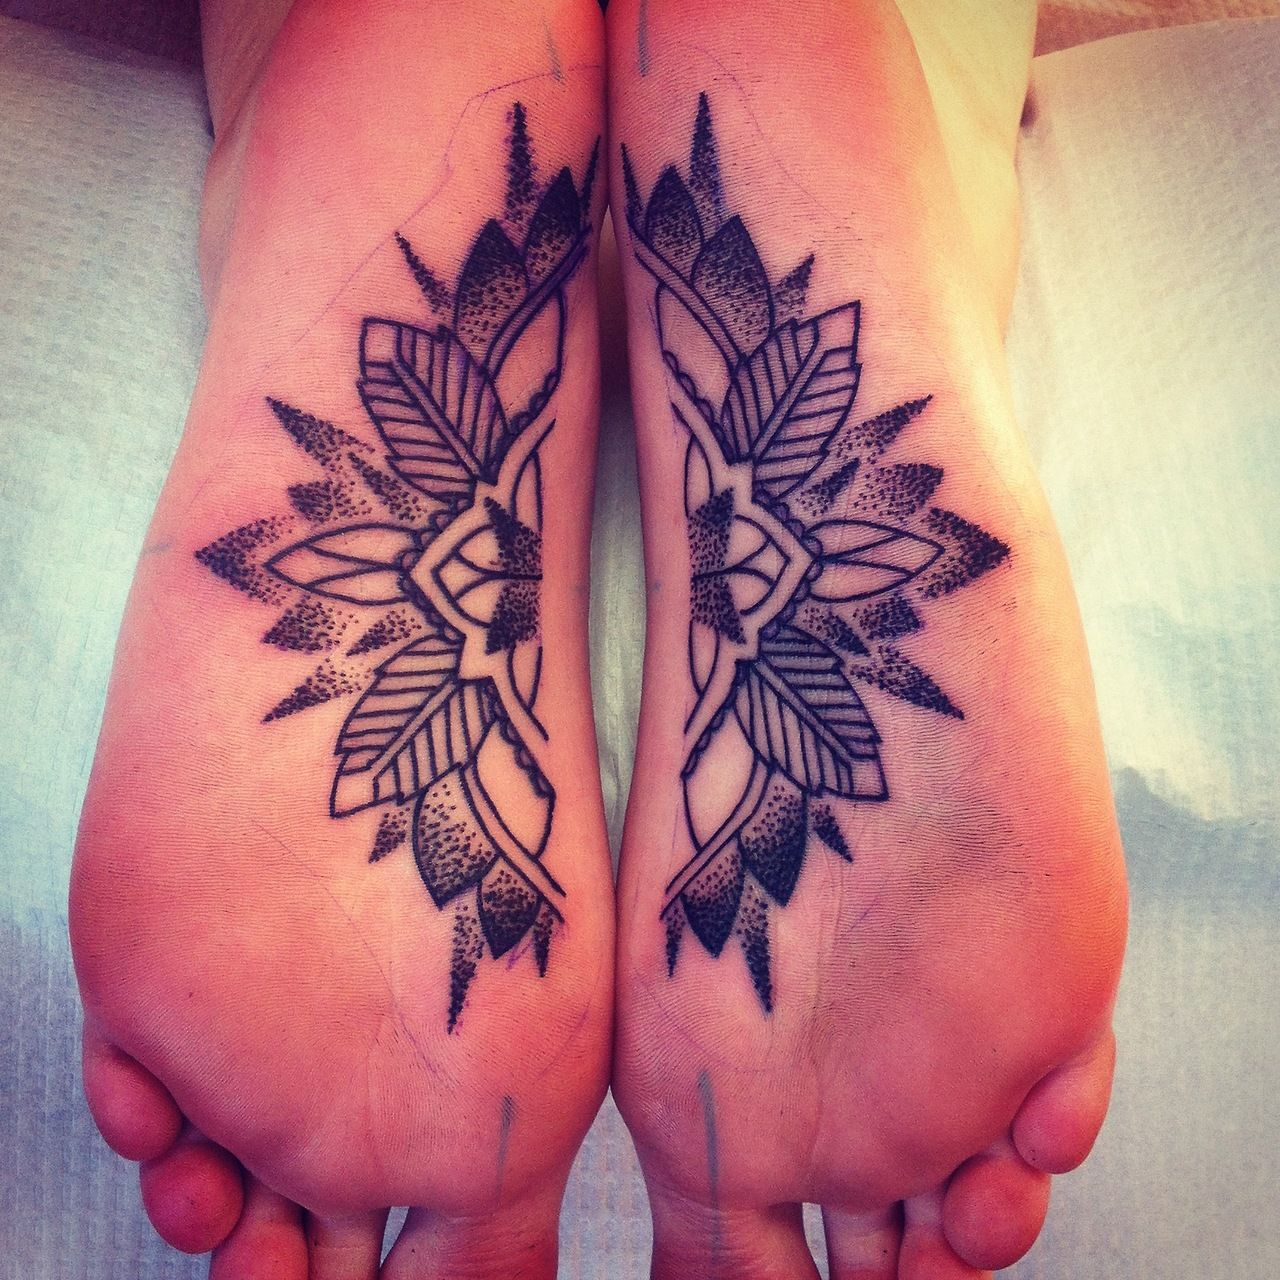 Tattoo Designs Breast: Split Foot Mandala.